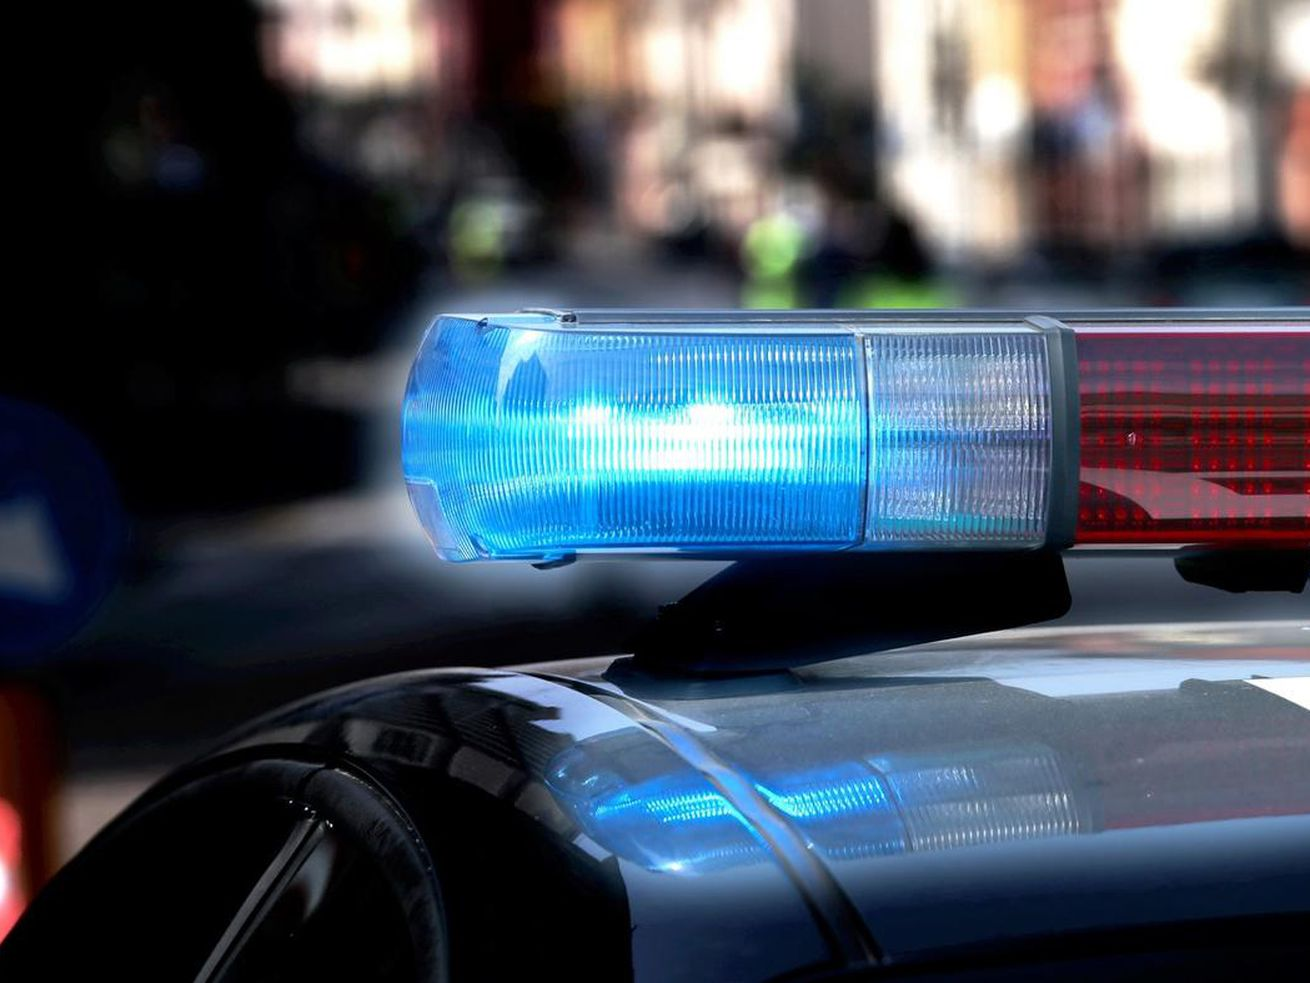 5-year-old hit by vehicle, killed in Millcreek